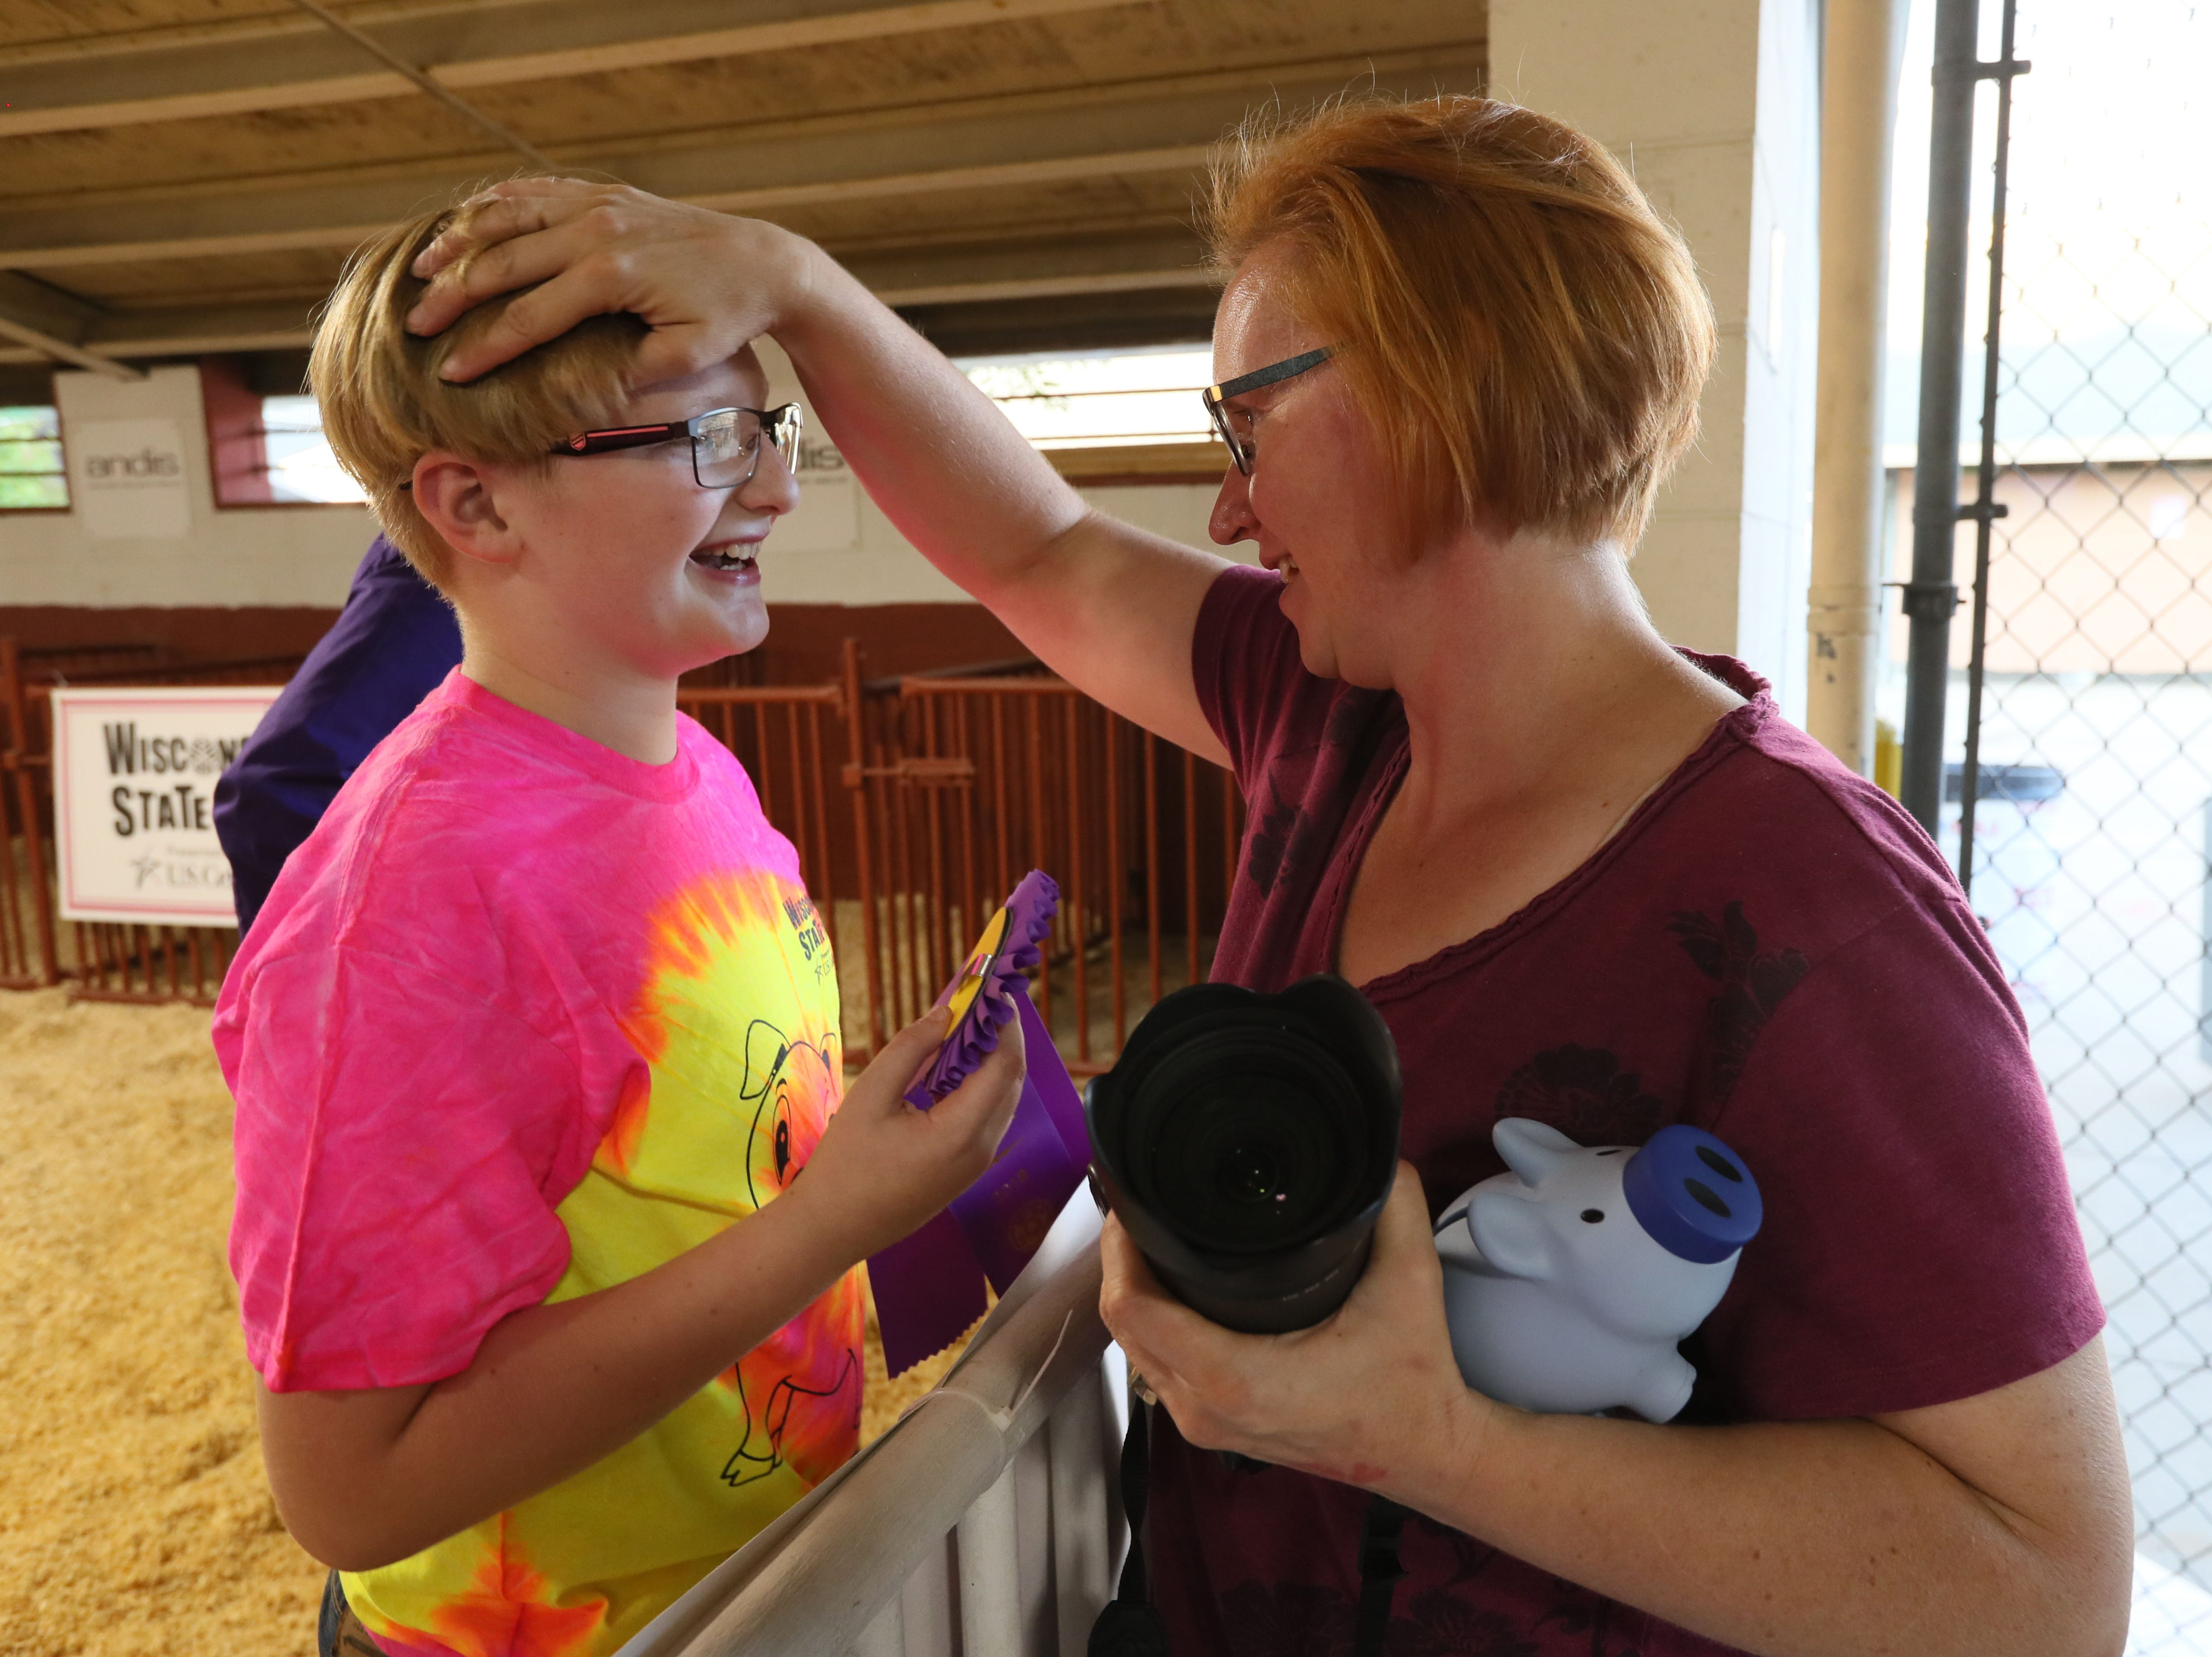 During Wisconsin State Fair's All for One Swine Show, youth with intellectual disabilities got to show a pig with the help of experienced mentors. Sam Incha, 10, of Cambridge, gets congratulations from his mom Cindy after winning an award for showing a pig.